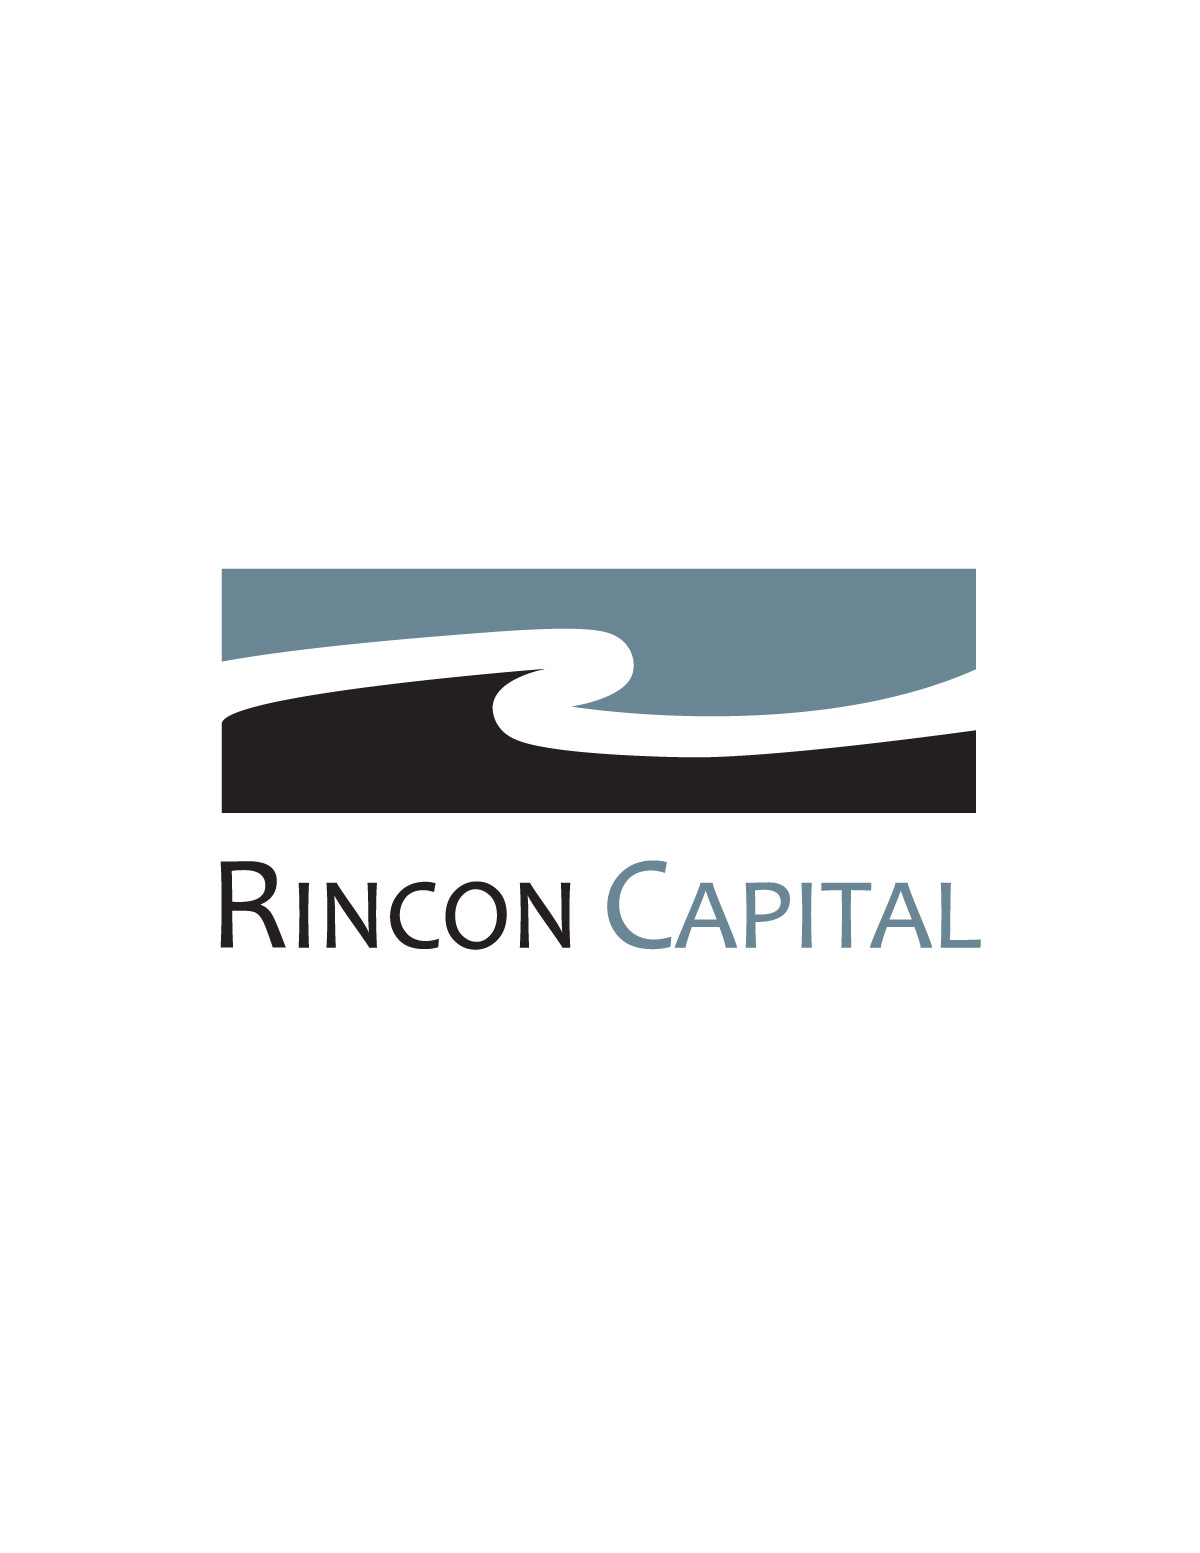 Logo for Investment Firm